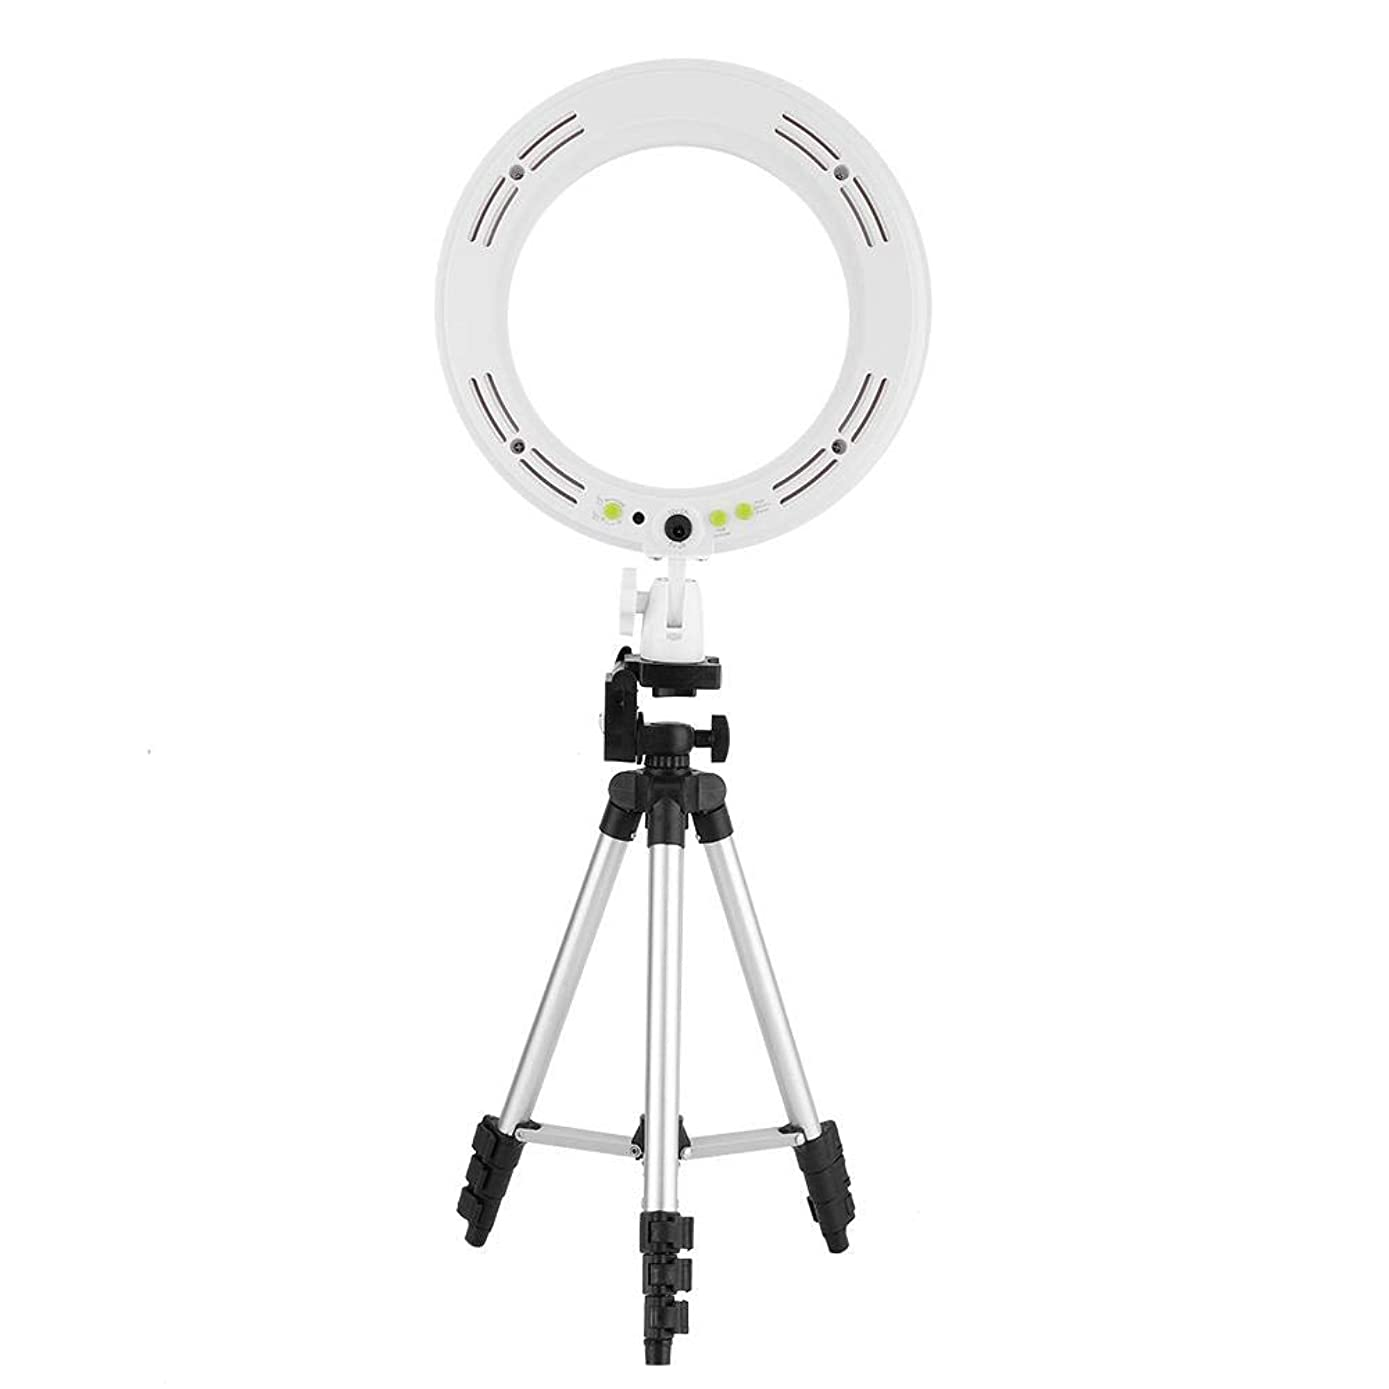 Ring Light with Tripod Stand Dimmable LED Fill Light Kit, LED Video Ring Light Fill-in Lamp Studio Photography Lighting for YouTube Video Selfie Live Stream and Makeup,10 inch Light